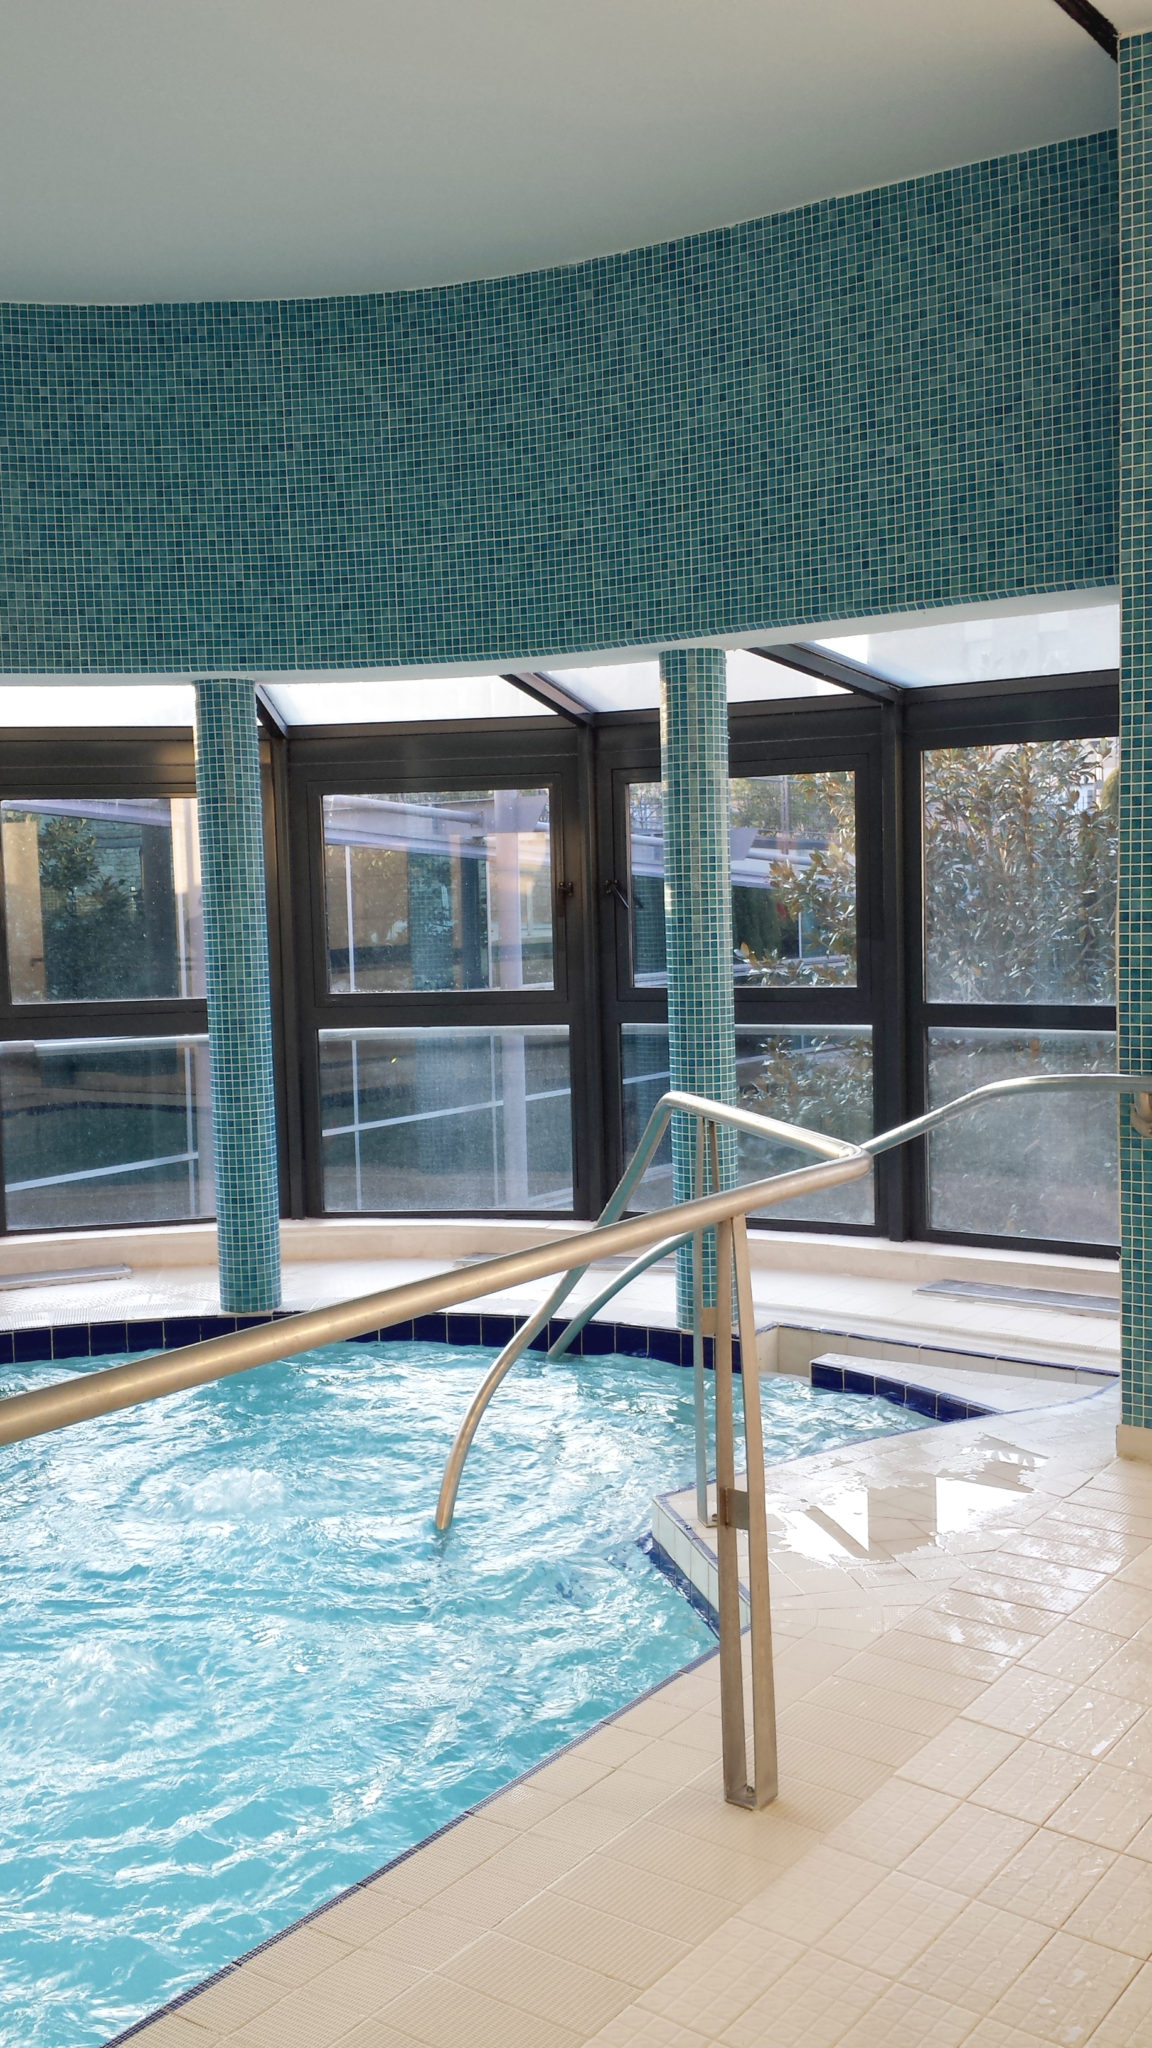 Journee_cocooning_aixenprovence_spa_thermes_sextius_jacuzzi_3